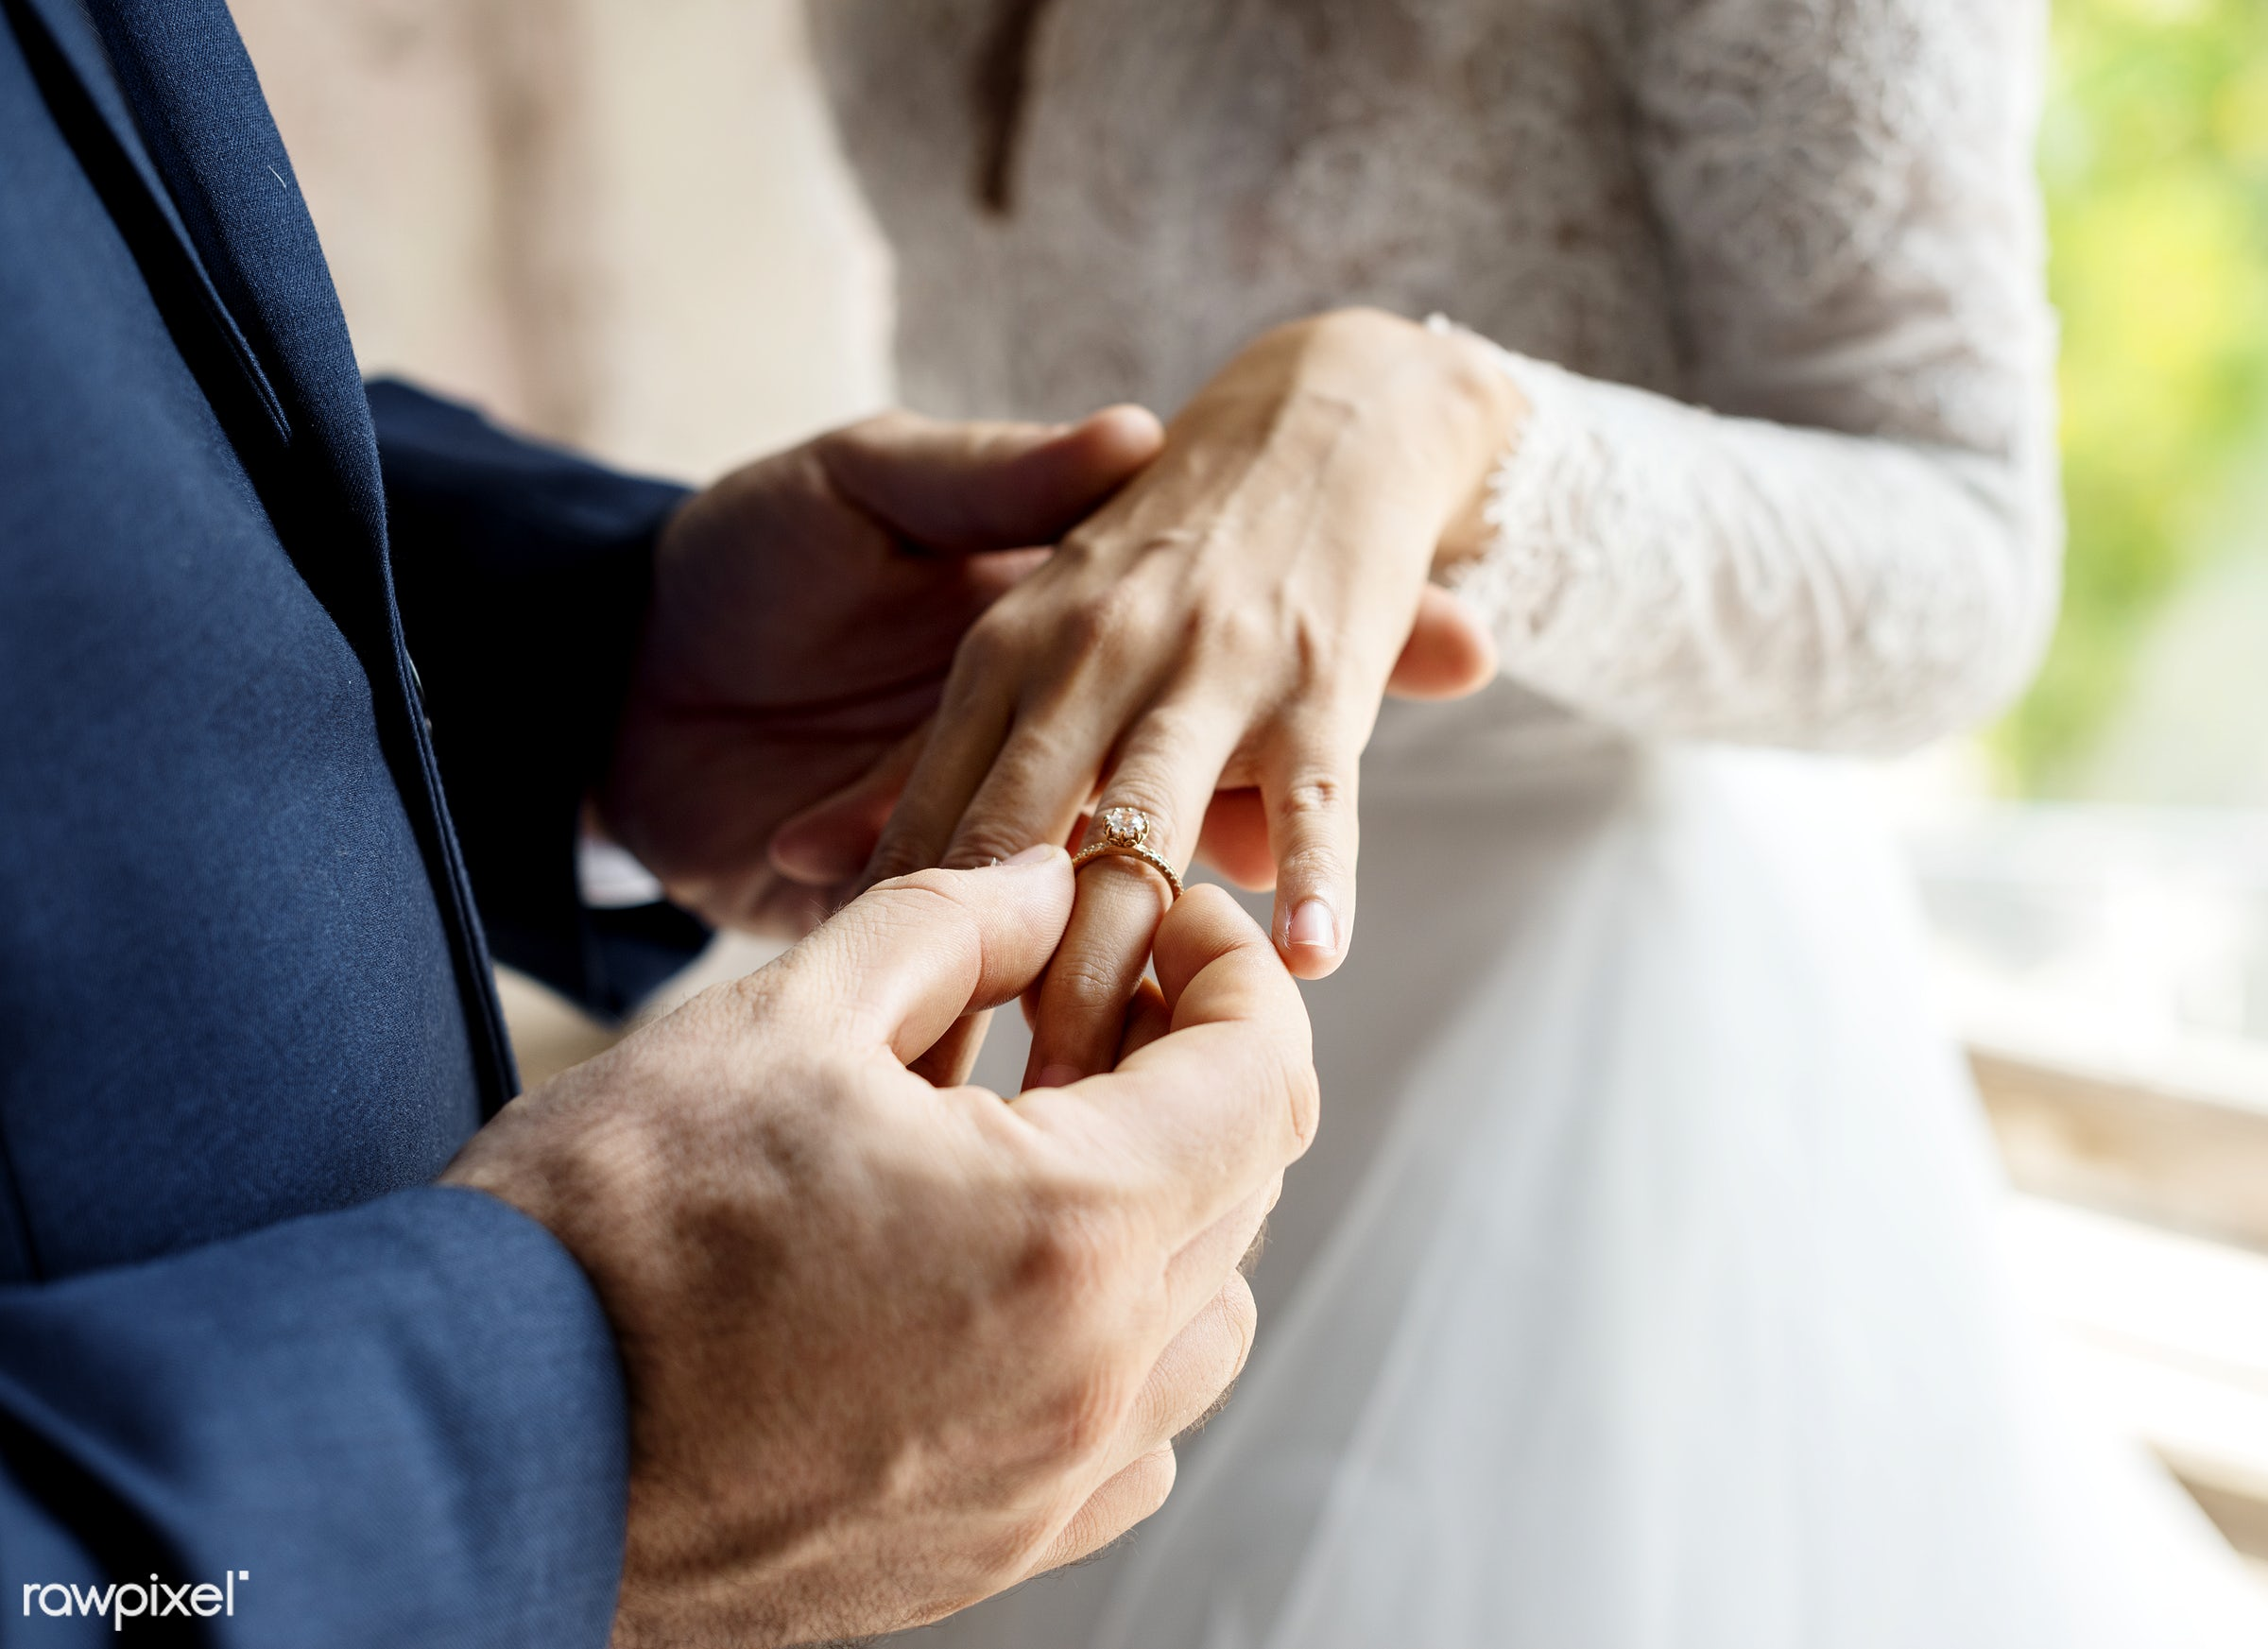 holding, people, together, love, married, hands, couple, bride, closeup, ring, put on, newlywed, ceremony, marriage, wedding...